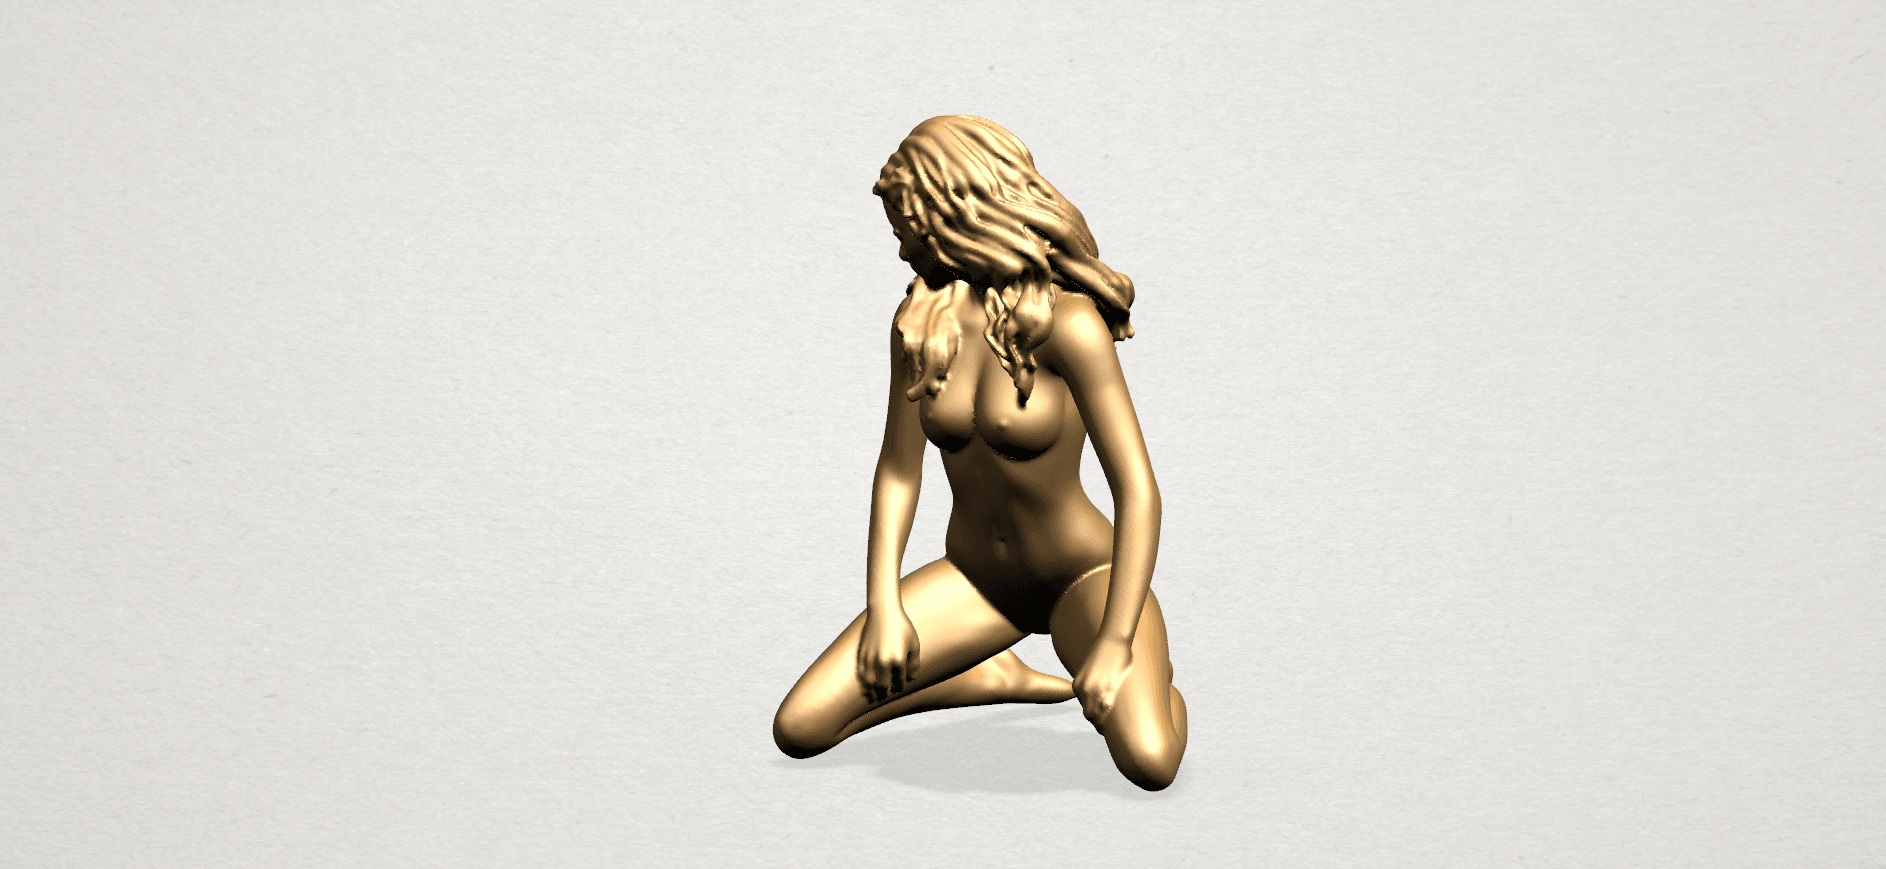 Naked girl - bended knees (II)-B02.png Download free STL file Naked girl - Bended Knees 02 -TOP MODEL • 3D printing object, GeorgesNikkei